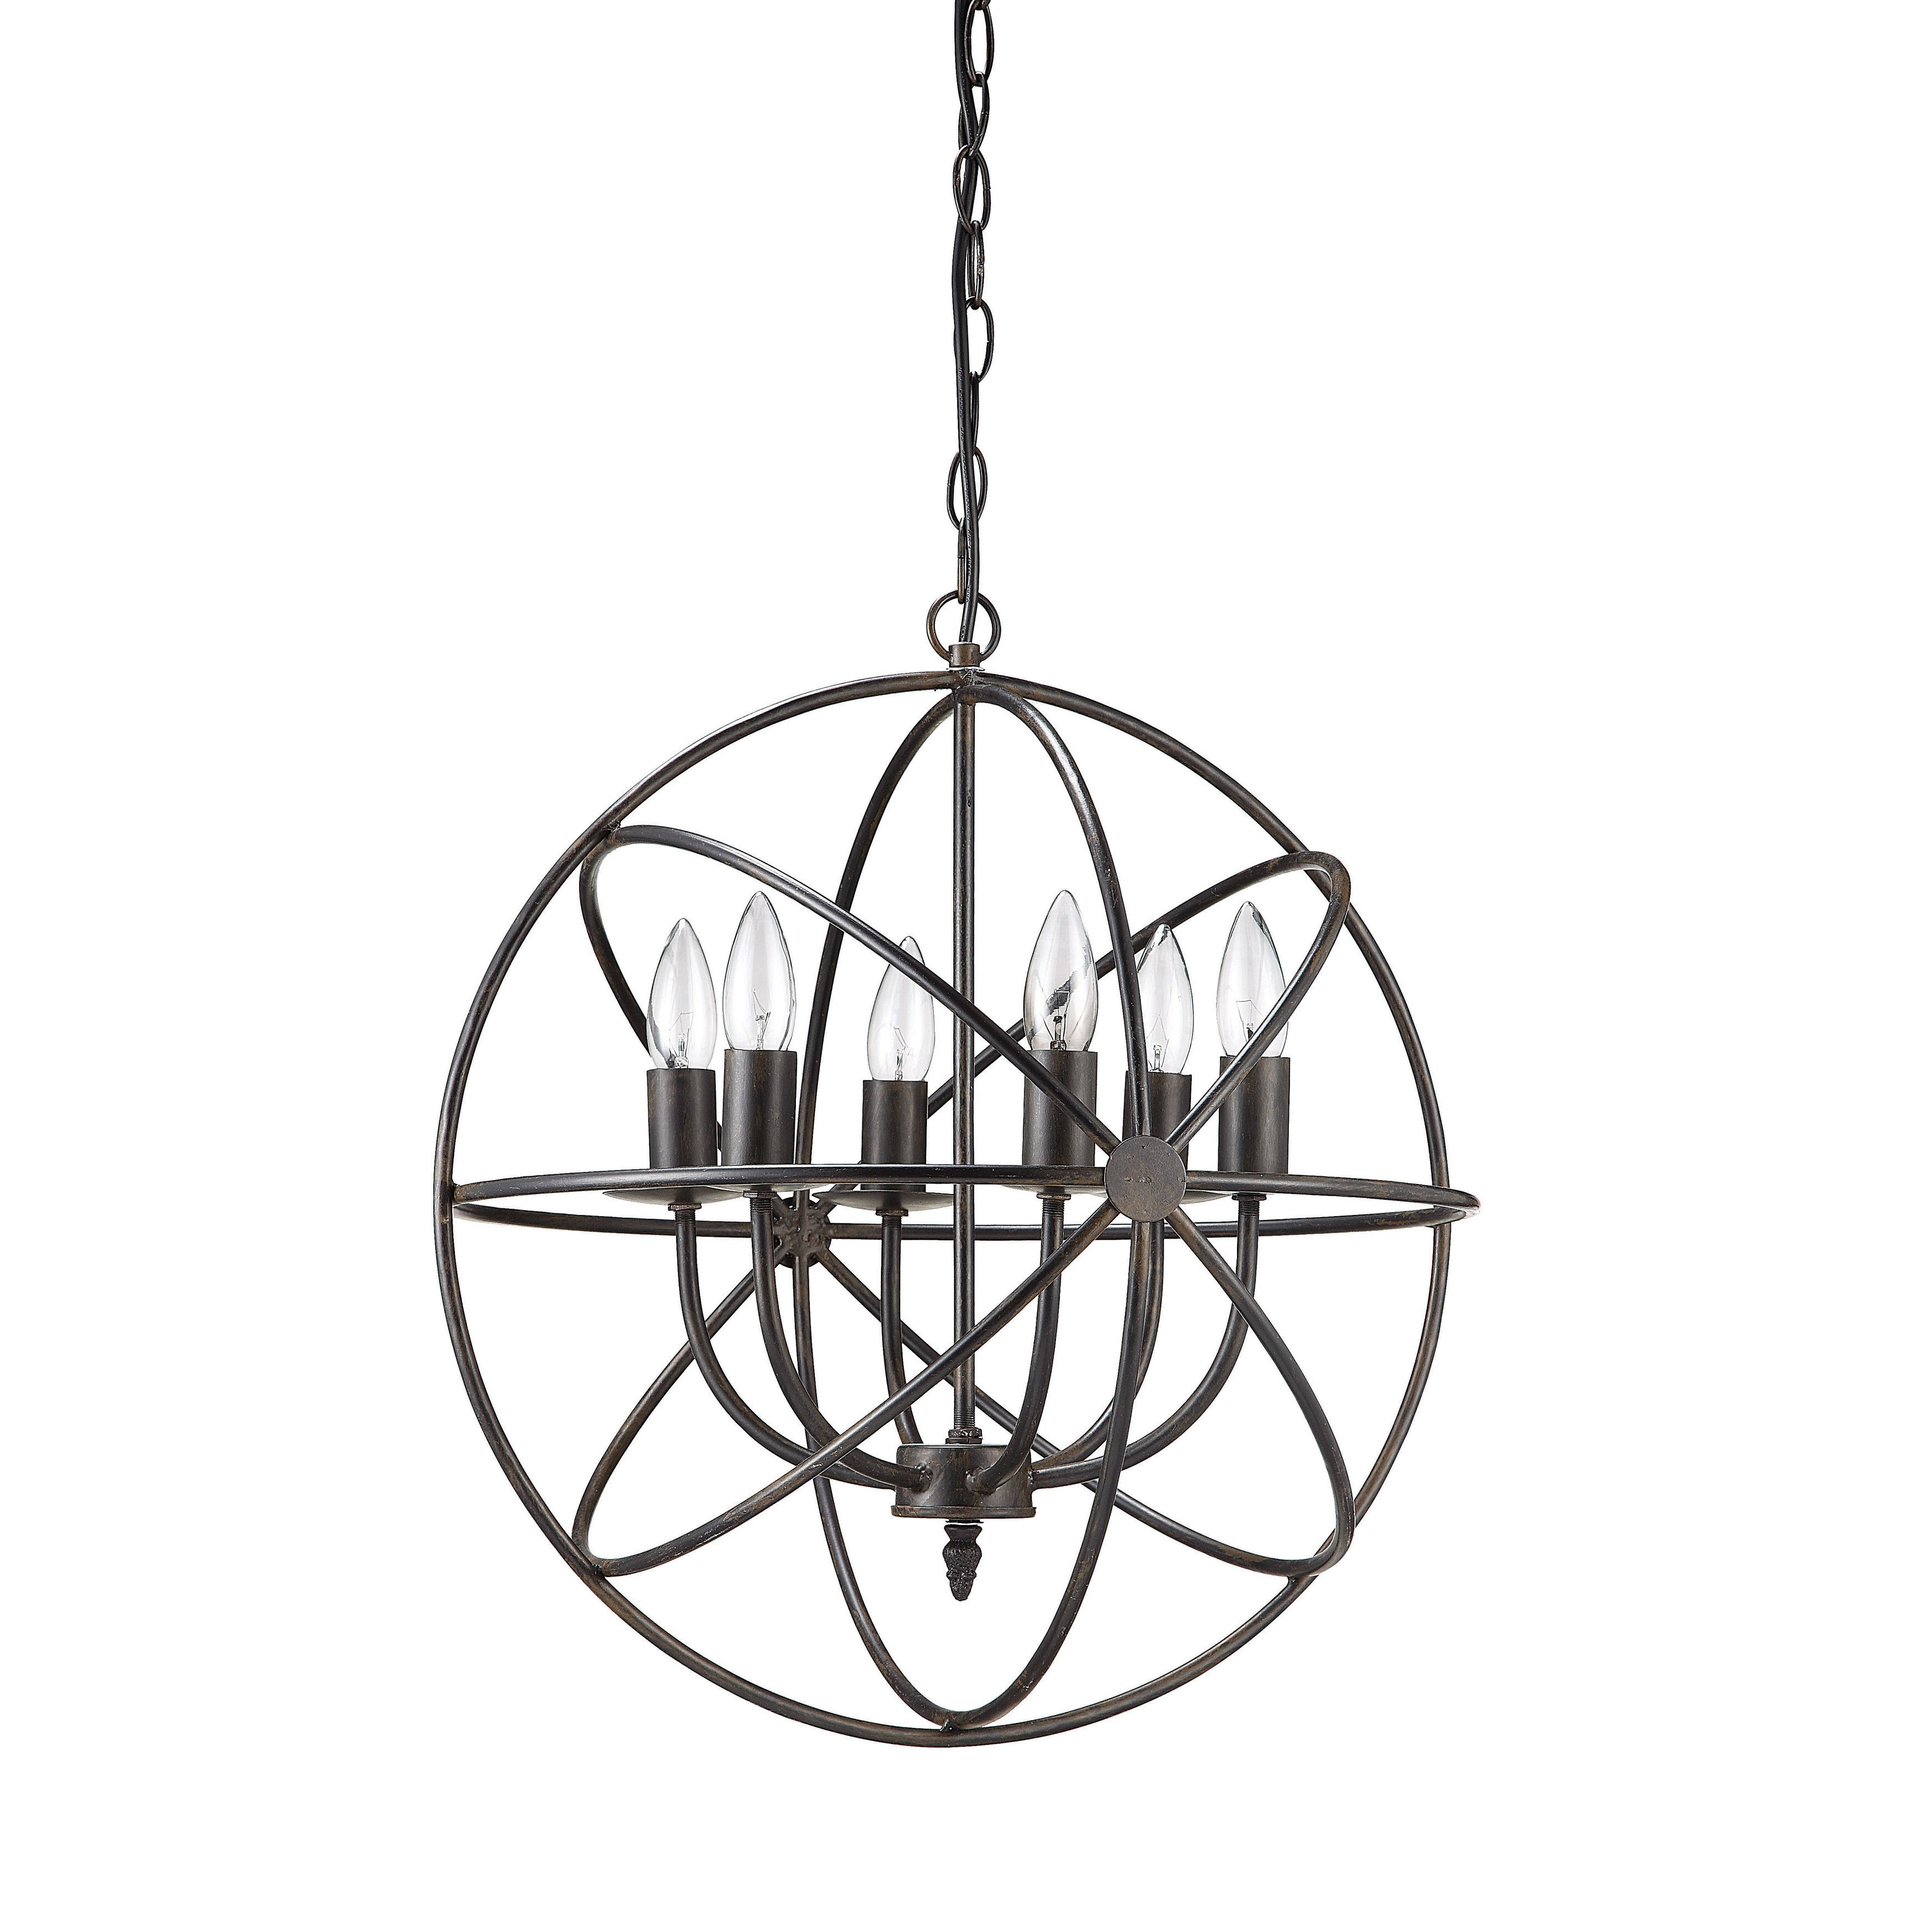 Woodland With Regard To Gregoire 6 Light Globe Chandeliers (View 10 of 25)